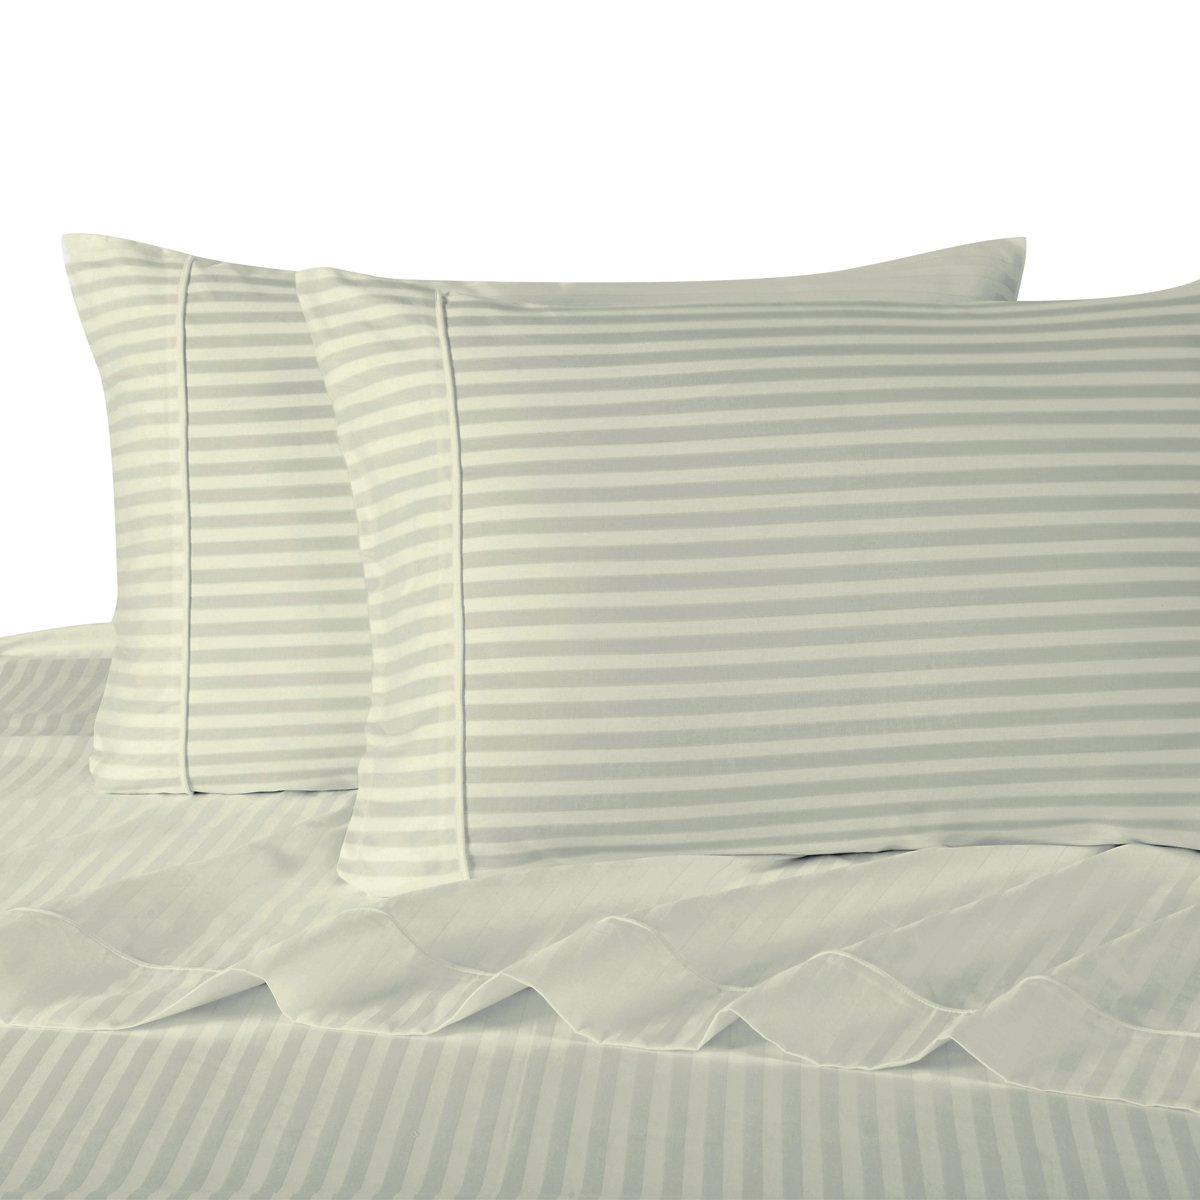 Stripe Ivory Standard Size Pillowcases, 2PC Pillow Cases, 100% Cotton, 300 Thread Count, Sateen Striped, by Royal Hotel